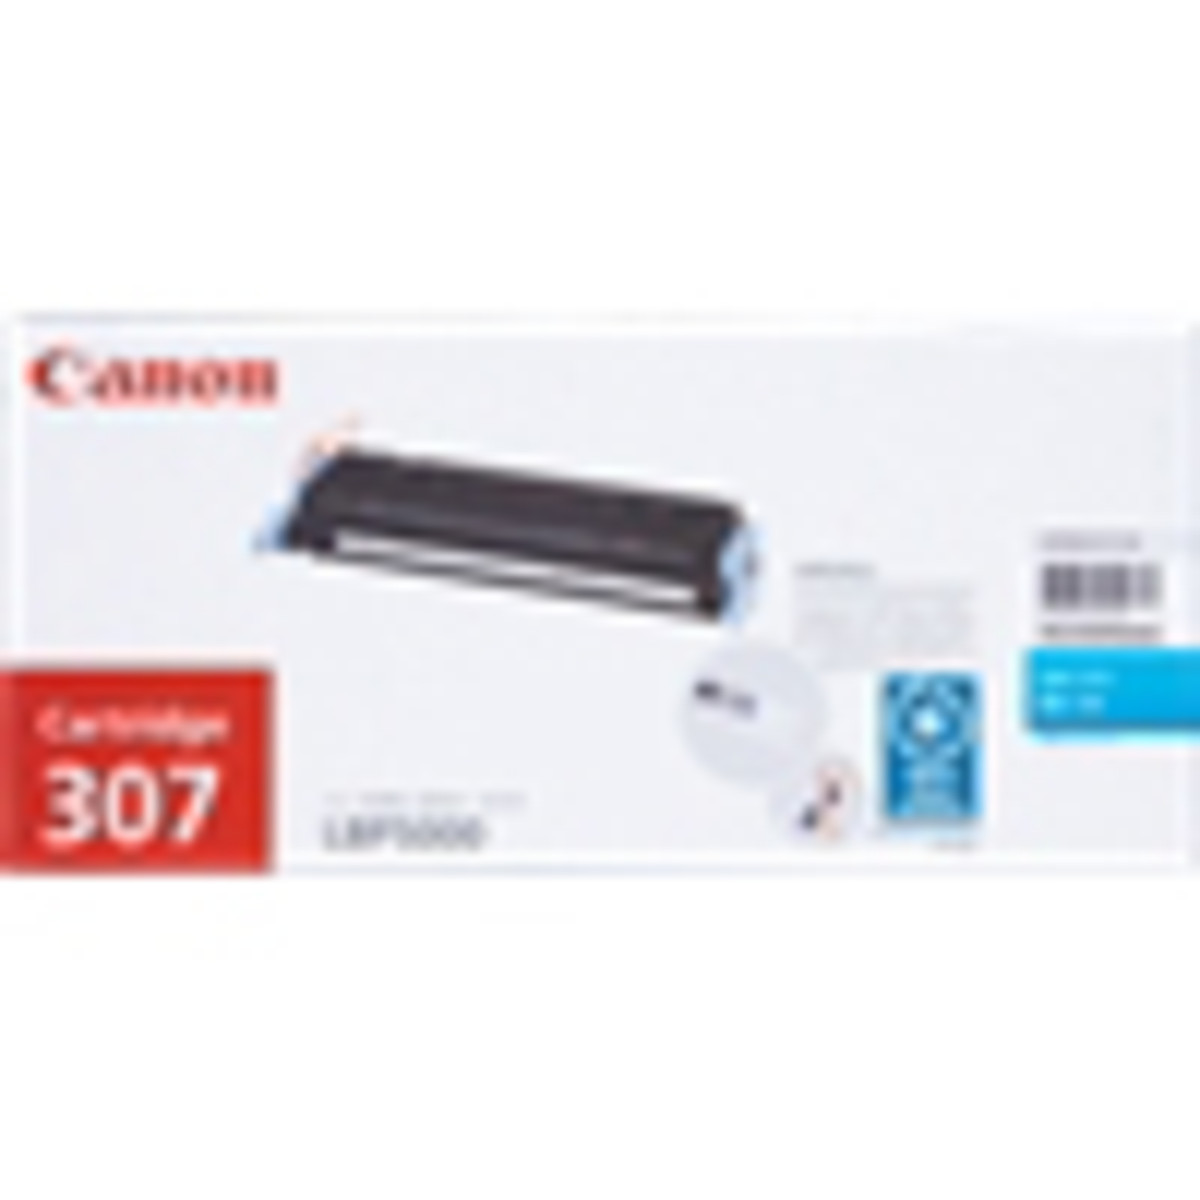 Canon CART-307C Cyan Toner Cartridge